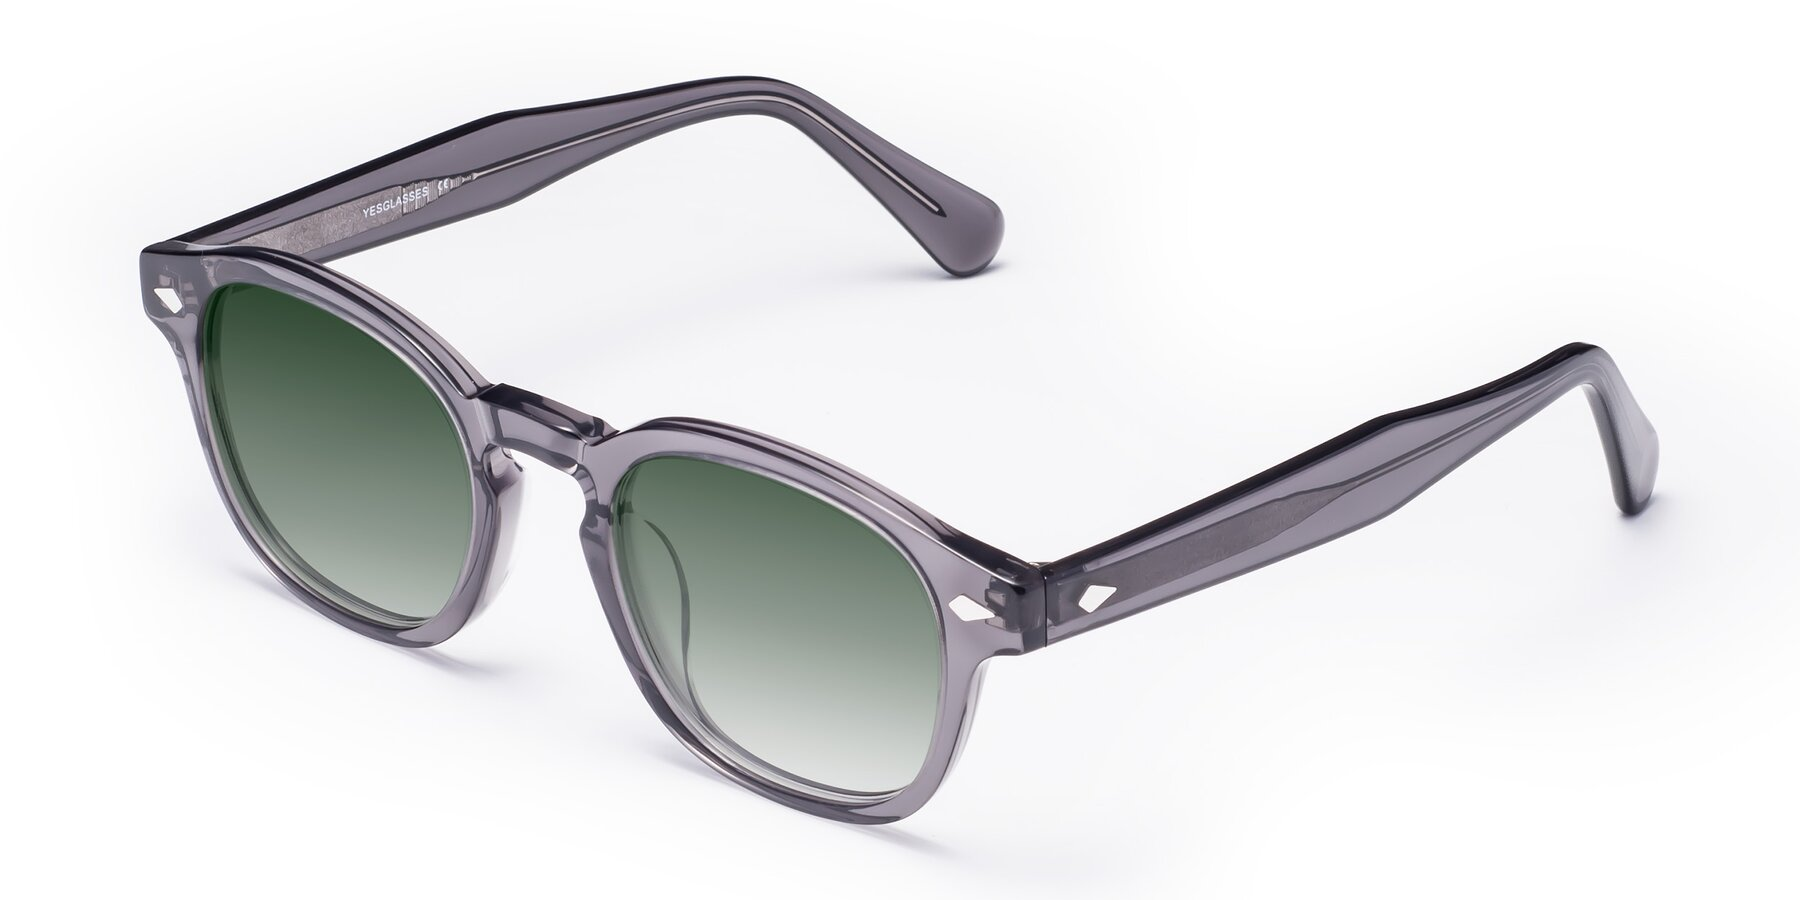 Angle of WALL-E in Translucent Gray with Green Gradient Lenses